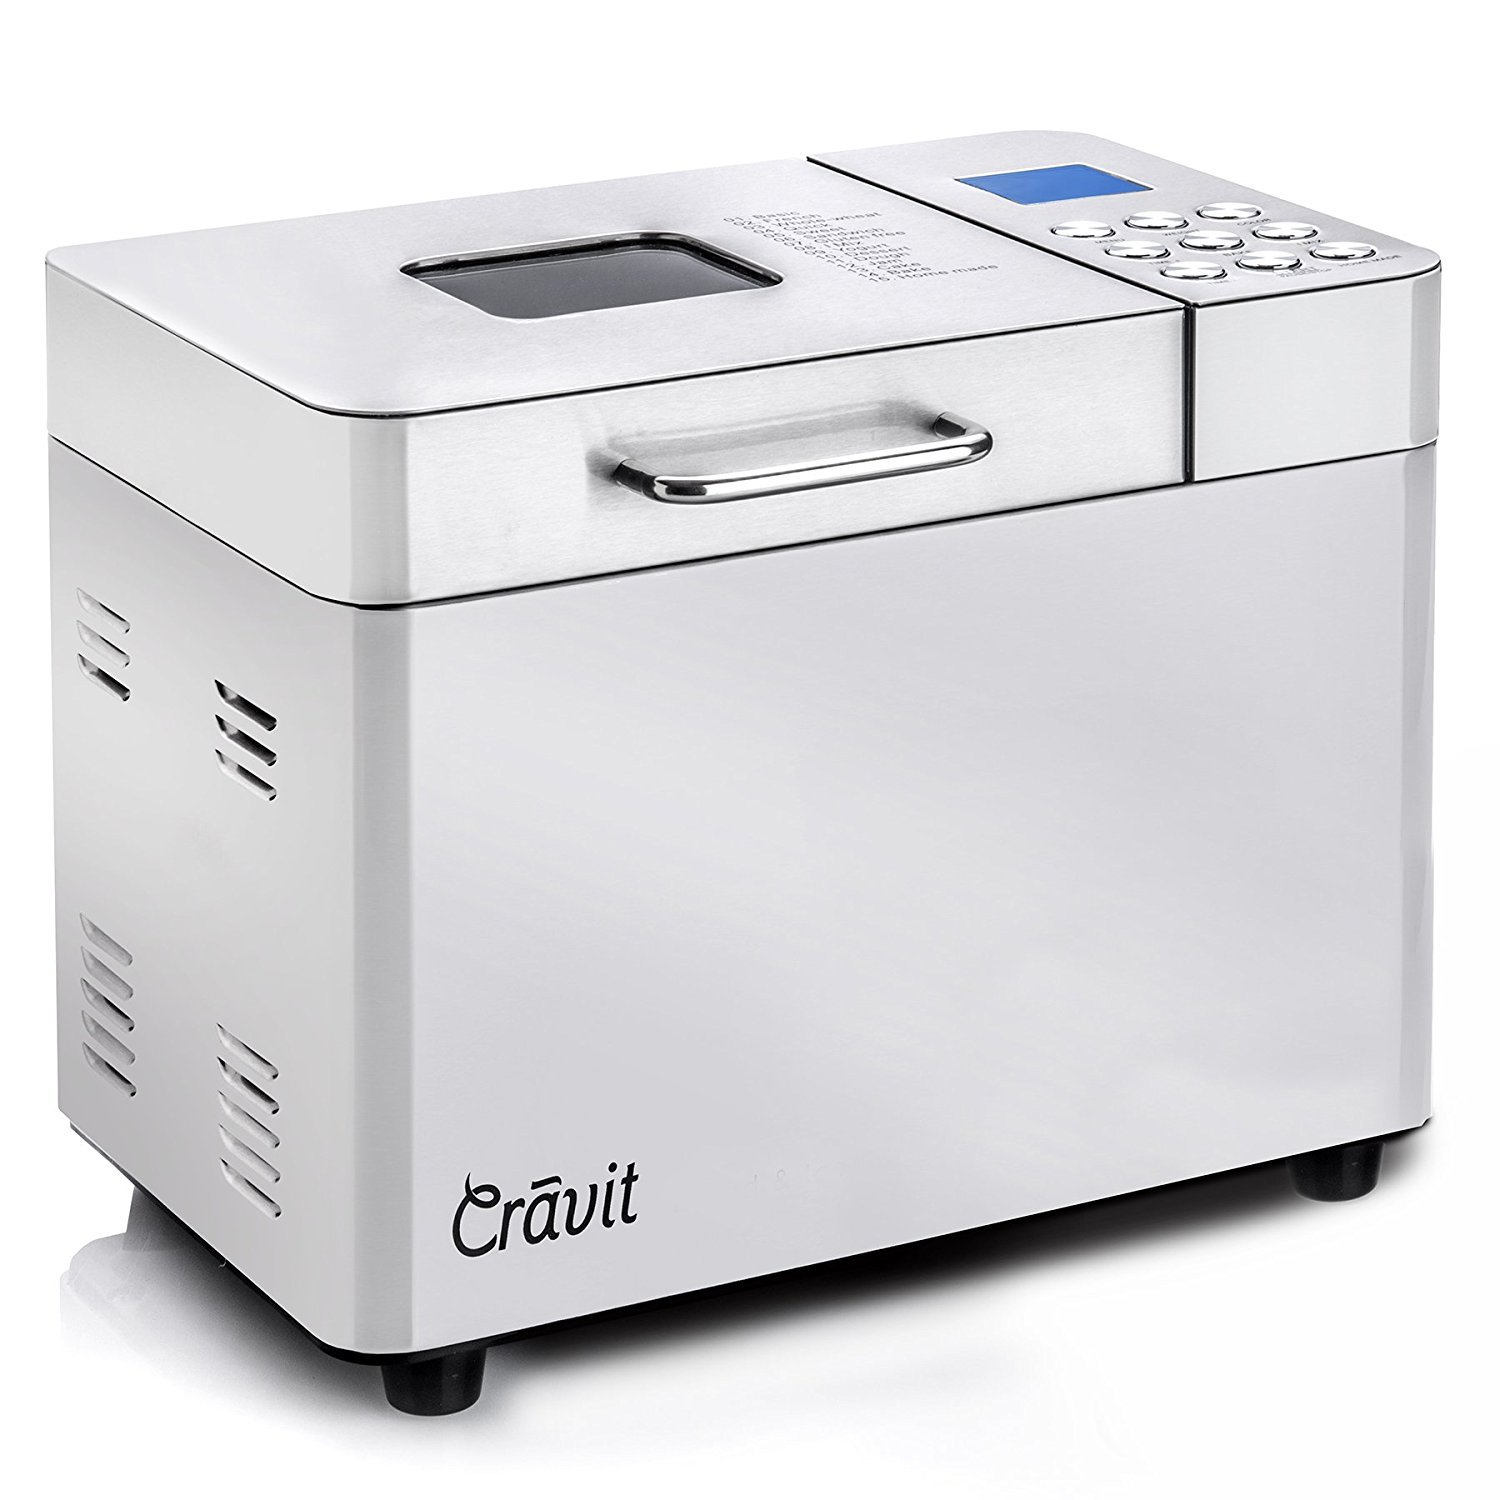 ALL NEW Crãvit DV-1000-NIC Gluten-Free, Whole Wheat (Low Carb) Bread Machine with 15 Other Preset Menu Options, including 1-hour Keep Warm Mode and 15-hour Delay Timer